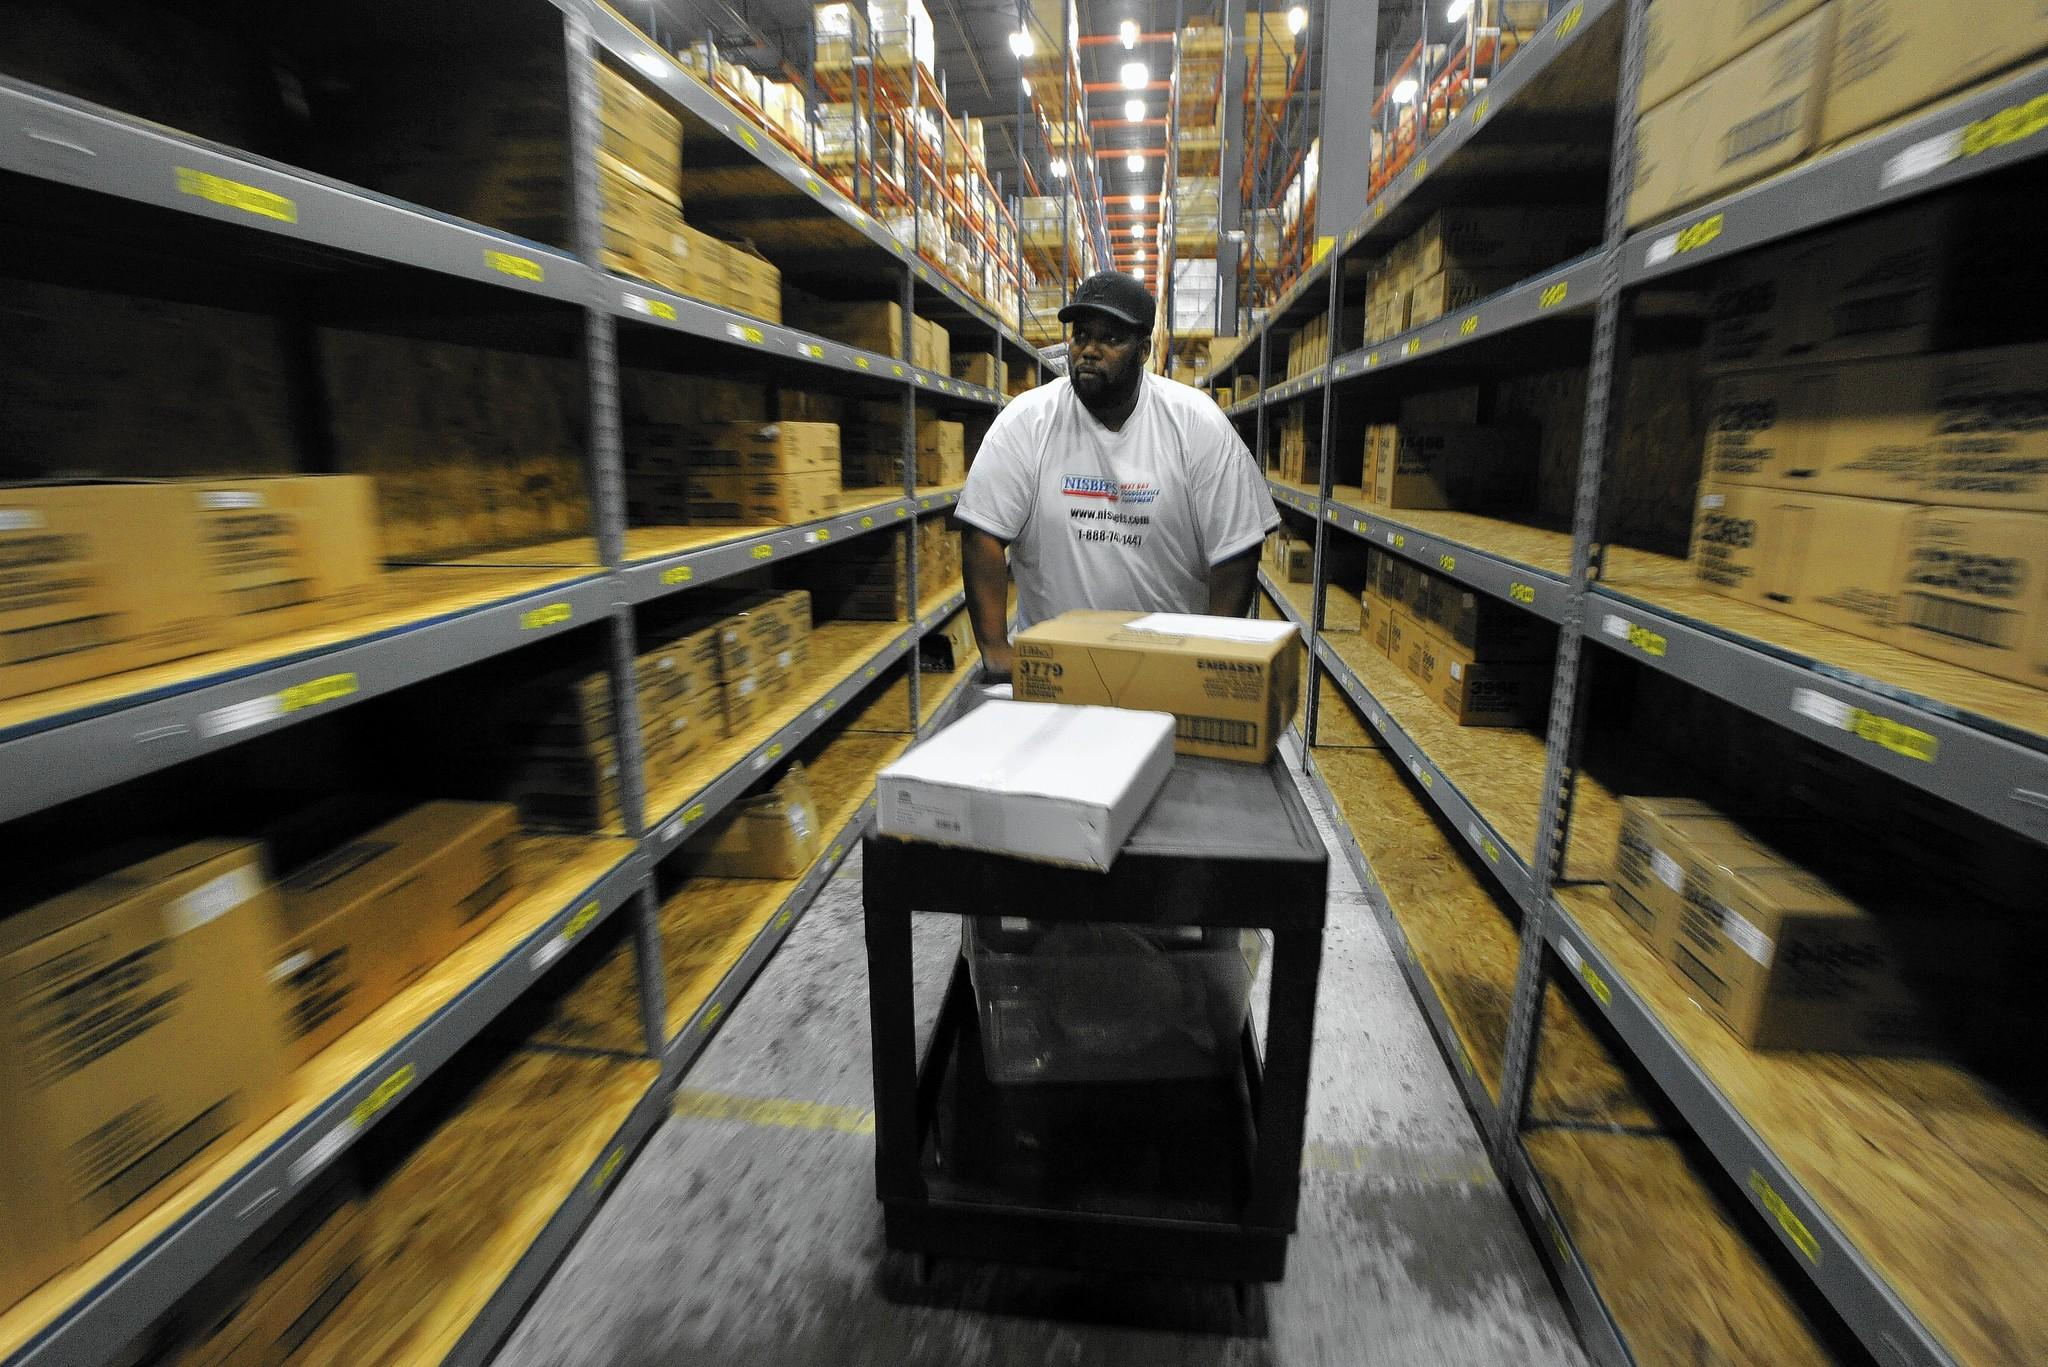 Dwayne Wesley a picker and packer at the warehouse fills an order as he walks through the warehouse. The recession and its long aftermath affected different parts of the state in wildly disparate ways, a Sun analysis shows.